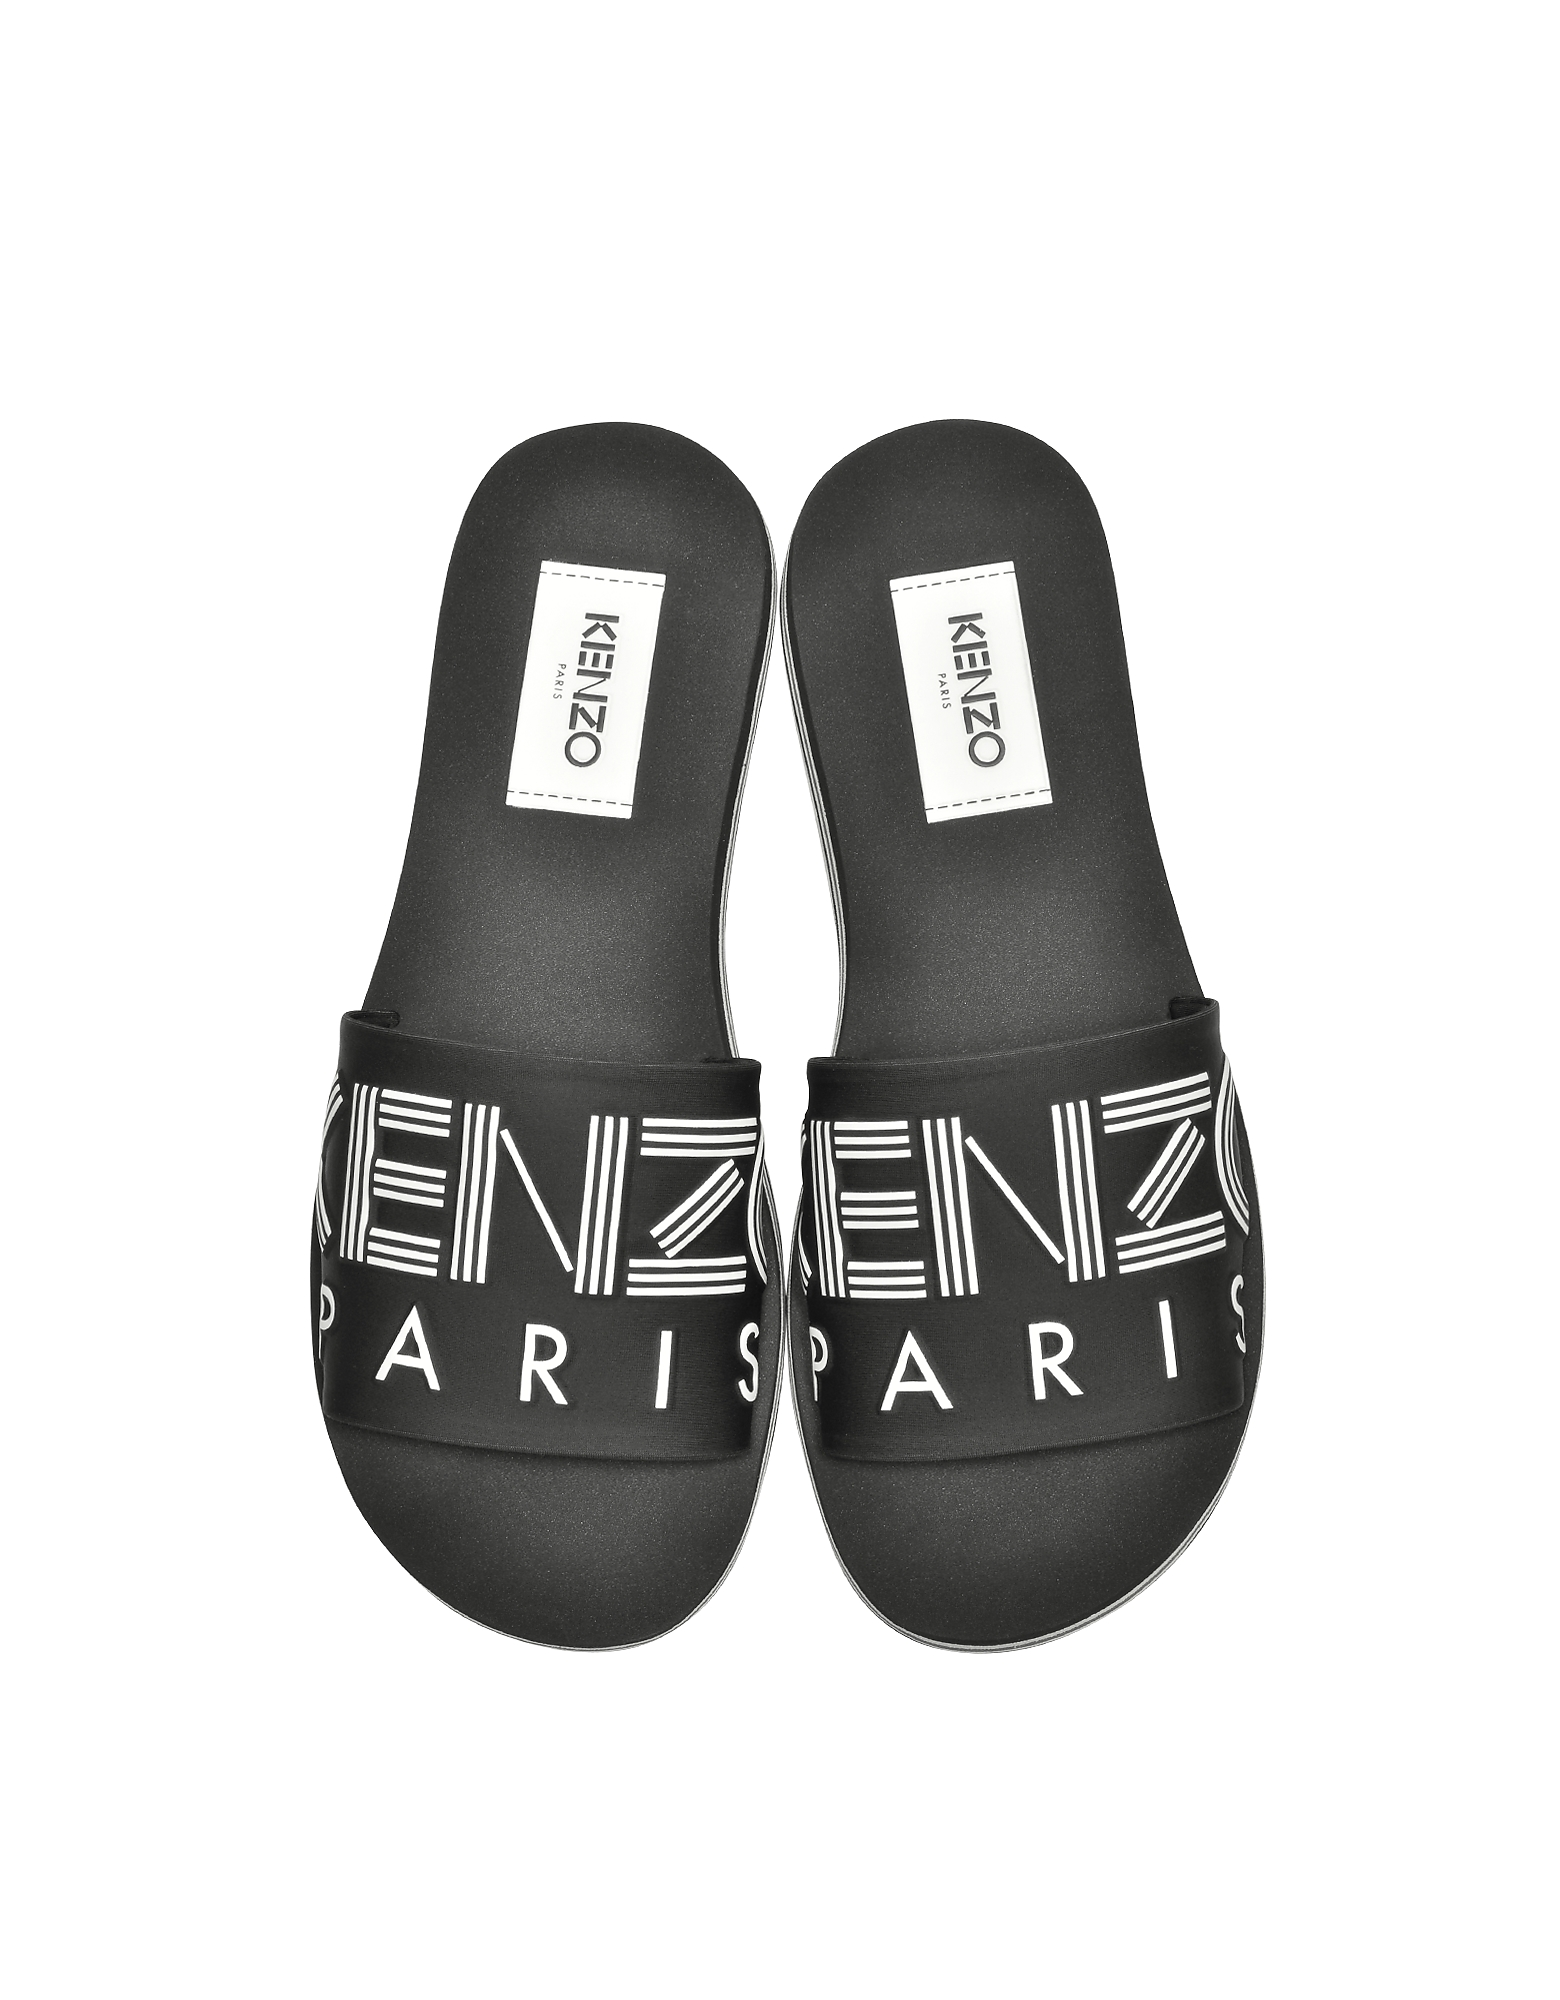 Black Neoprene Men's Sandals